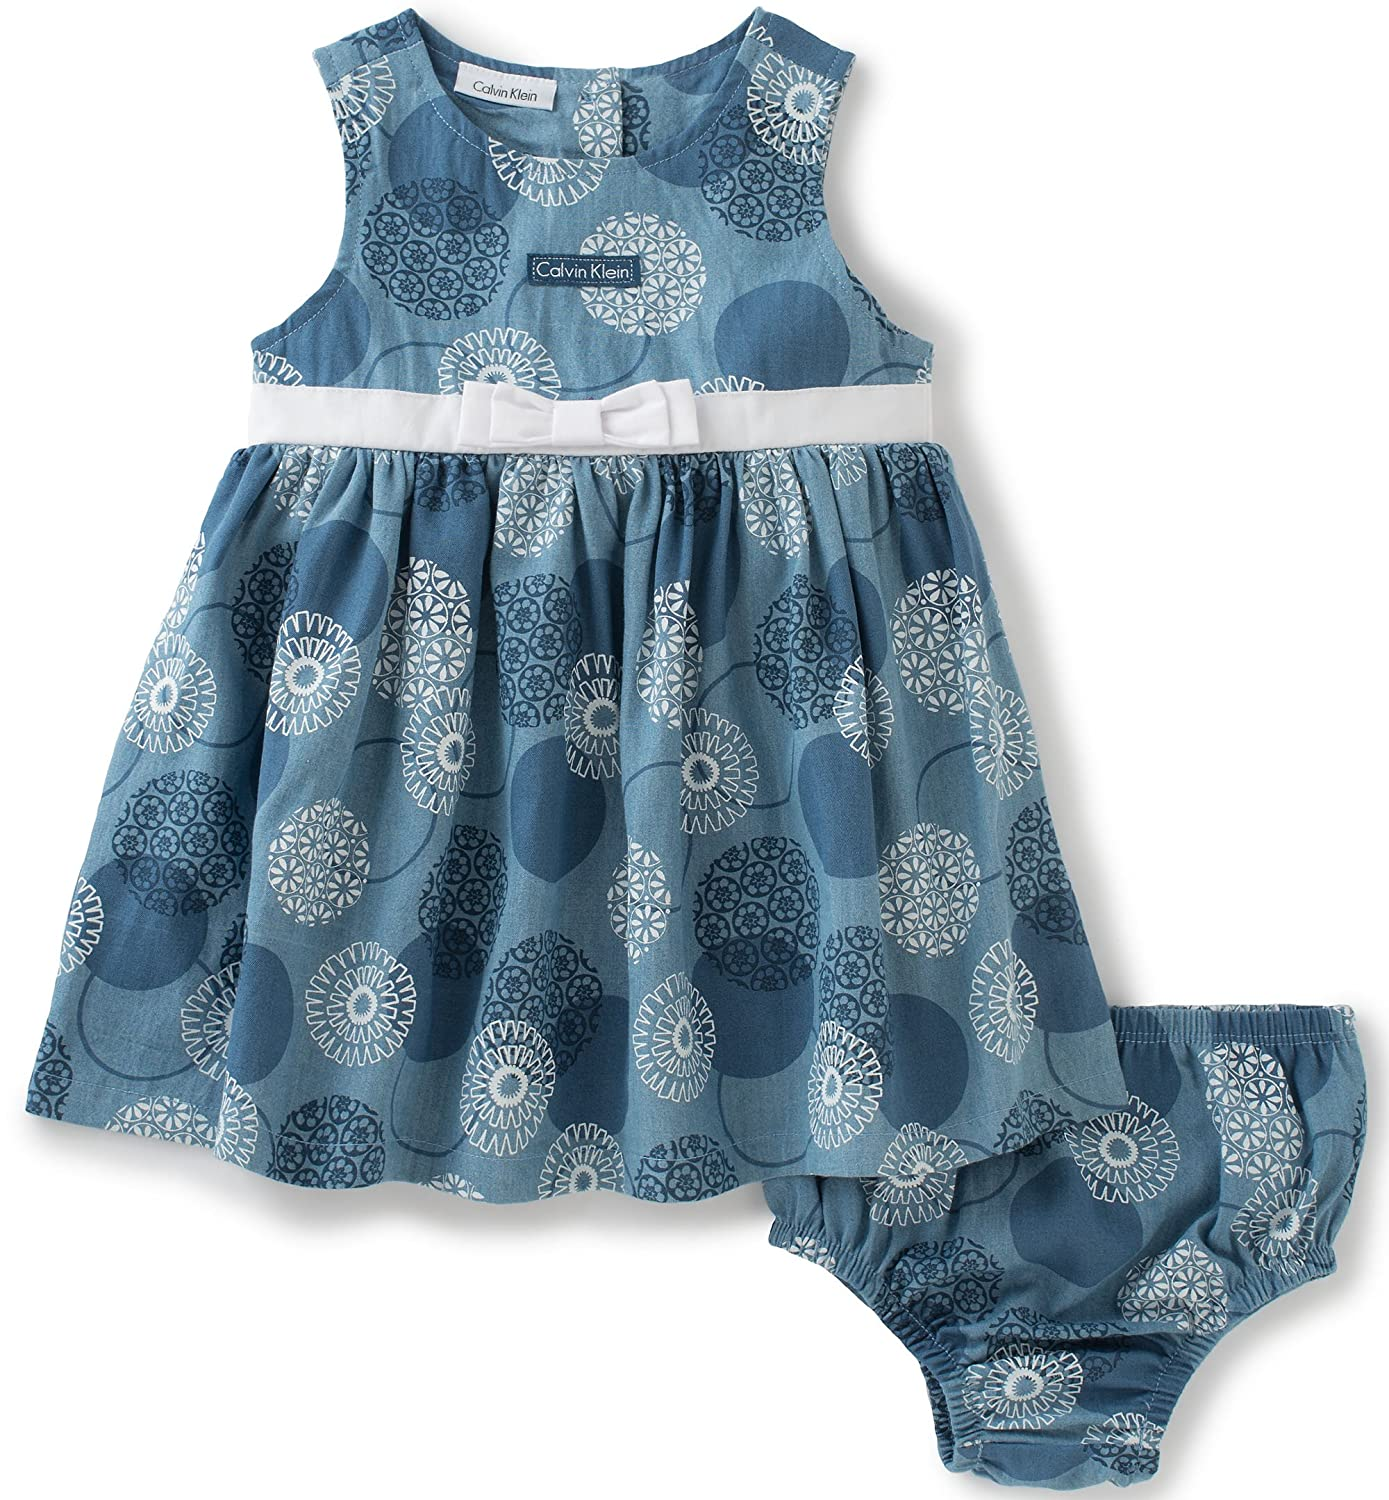 Calvin Klein Baby Girls 2 Pieces Denim Dress With Panty Belted